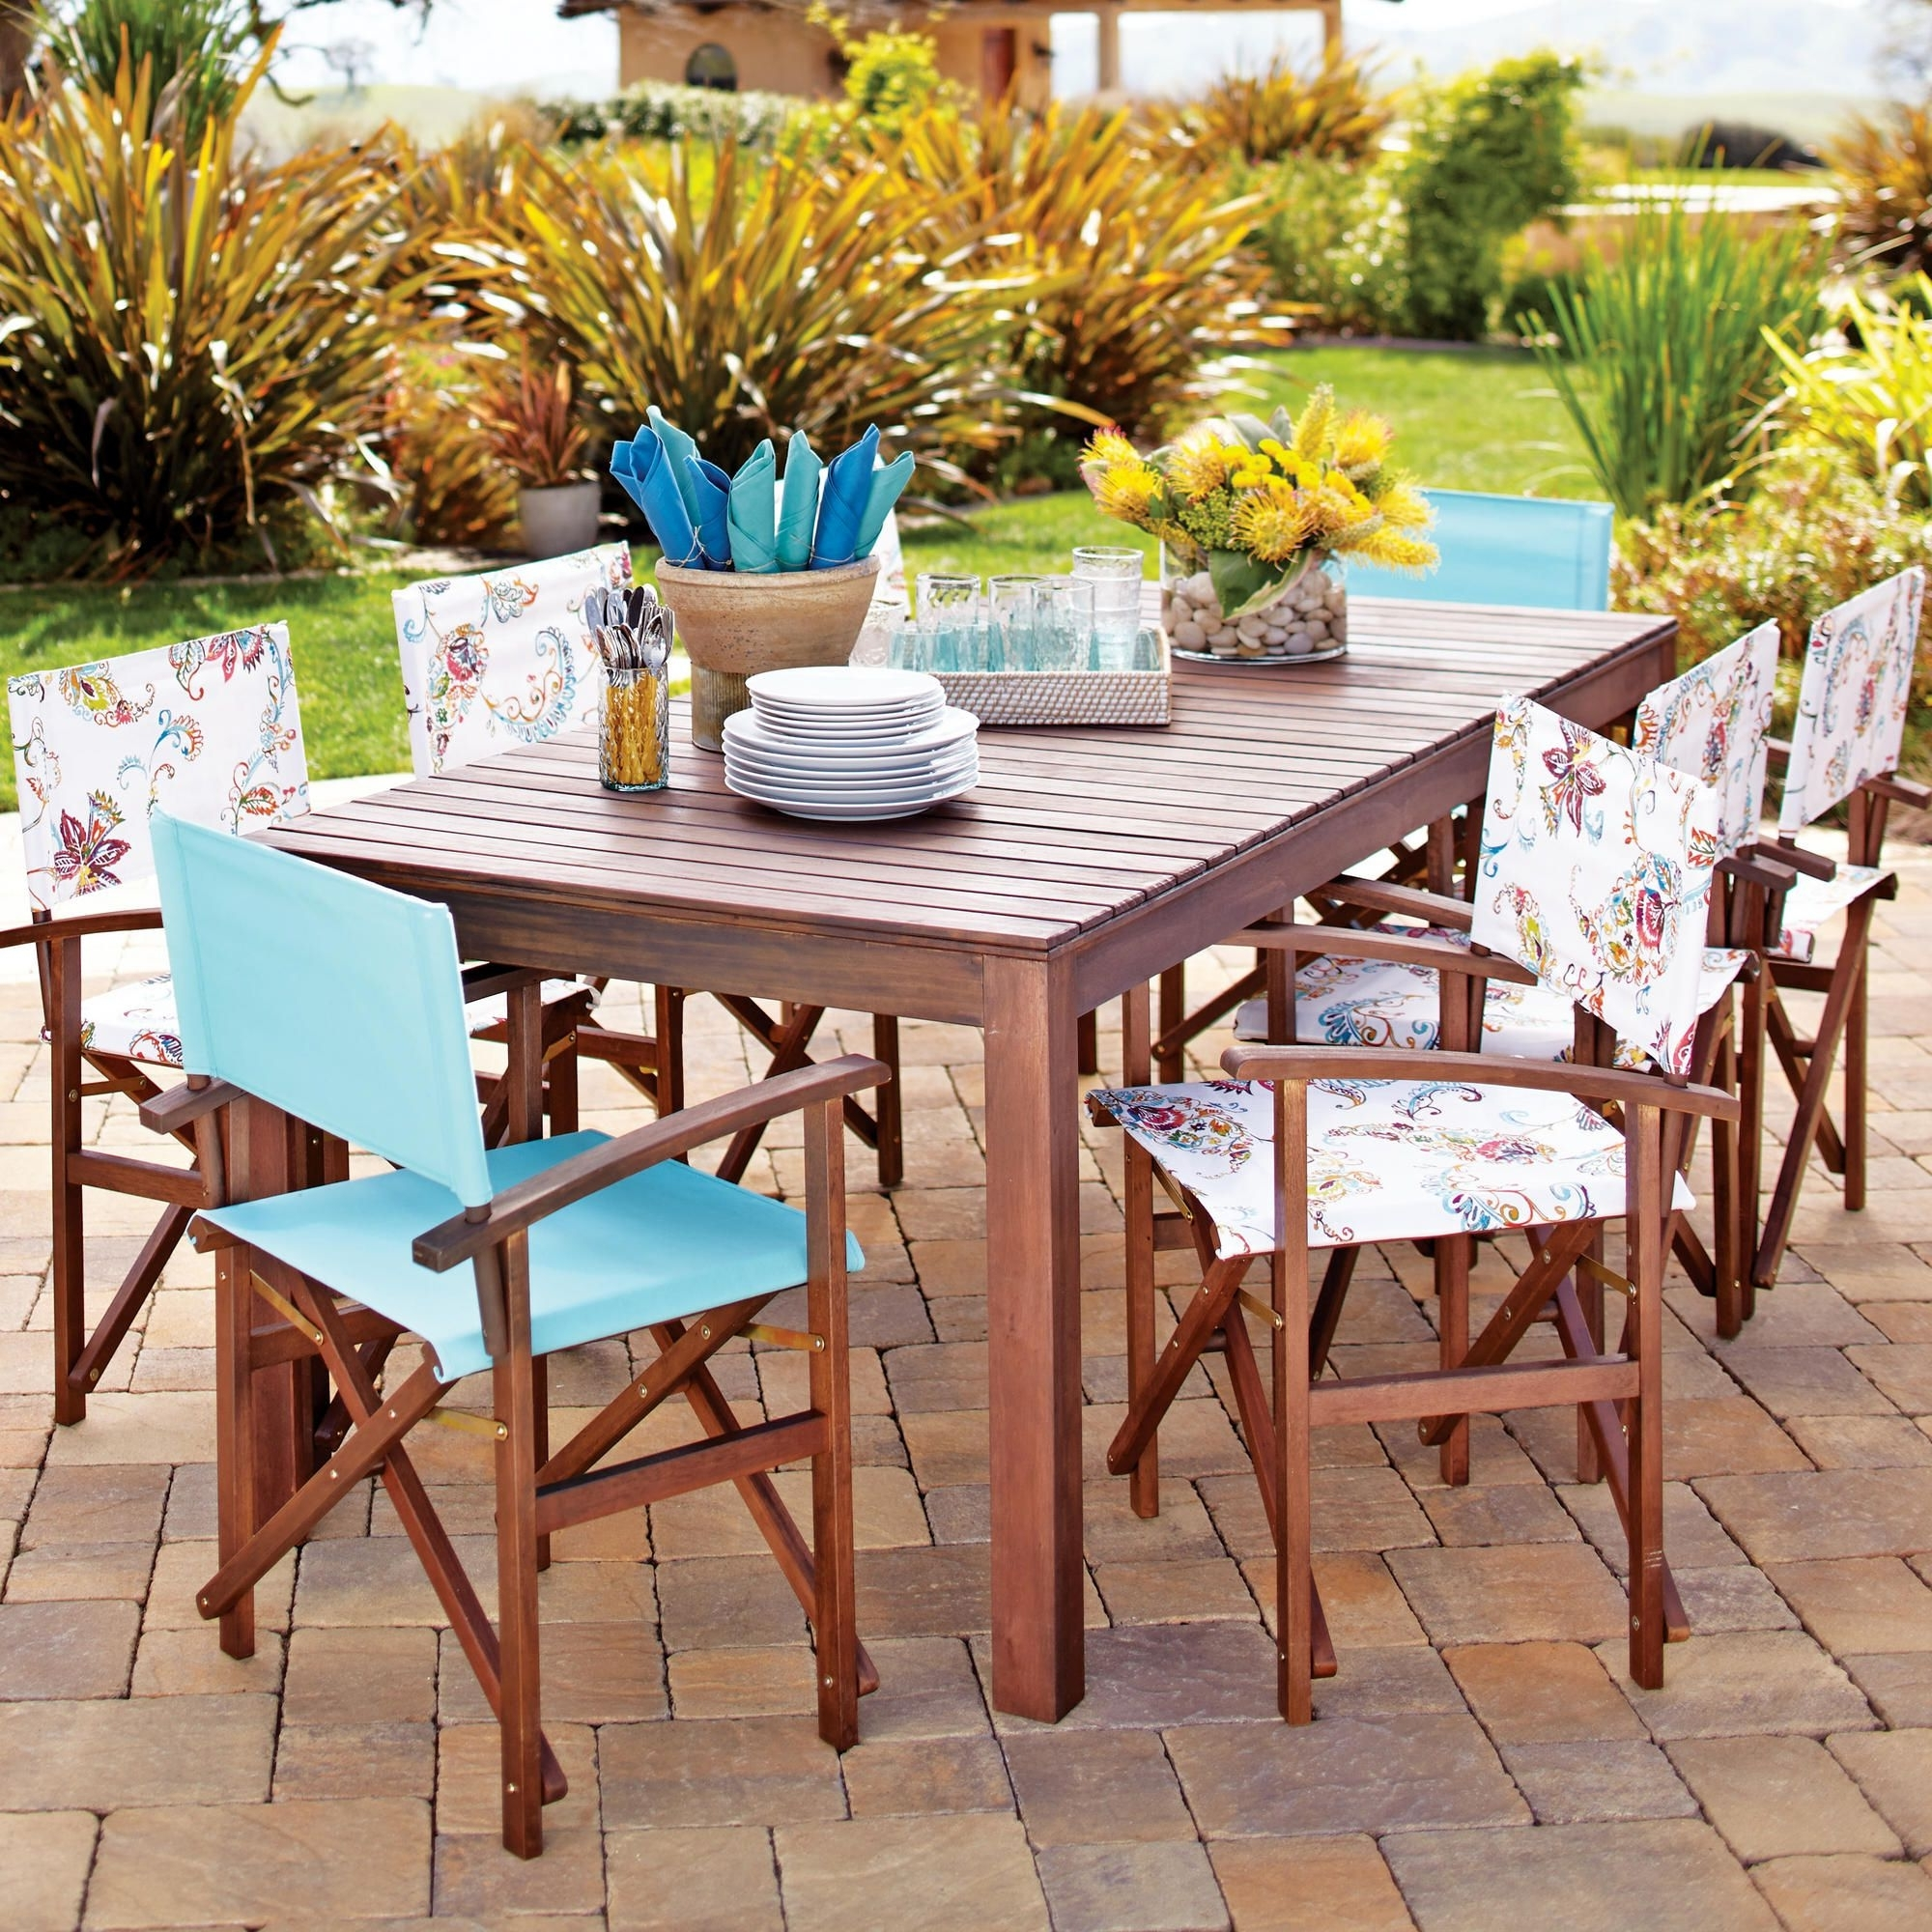 Home Style Throughout Well Known Bali Dining Sets (View 13 of 25)